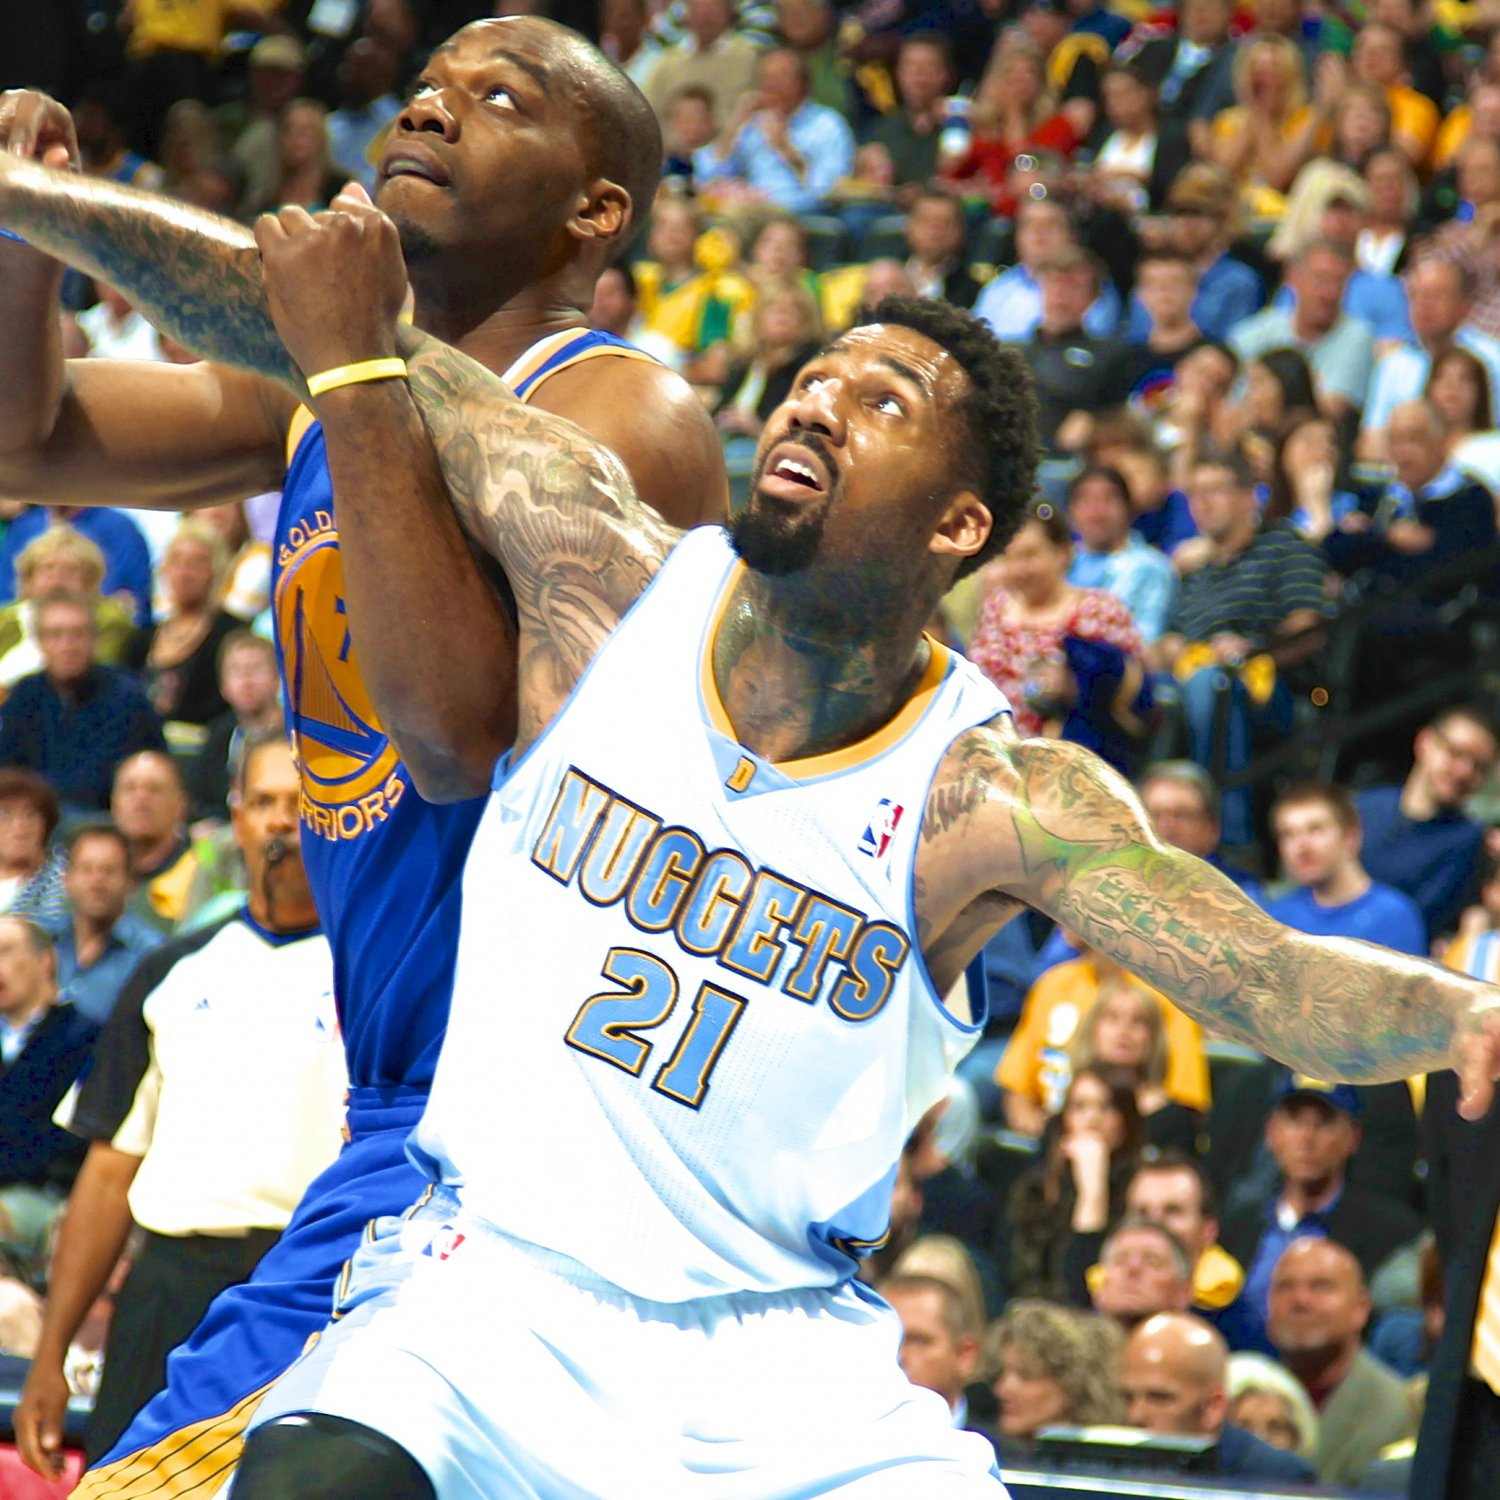 Warriors Vs Nuggets Game 5: Live Score, Highlights And